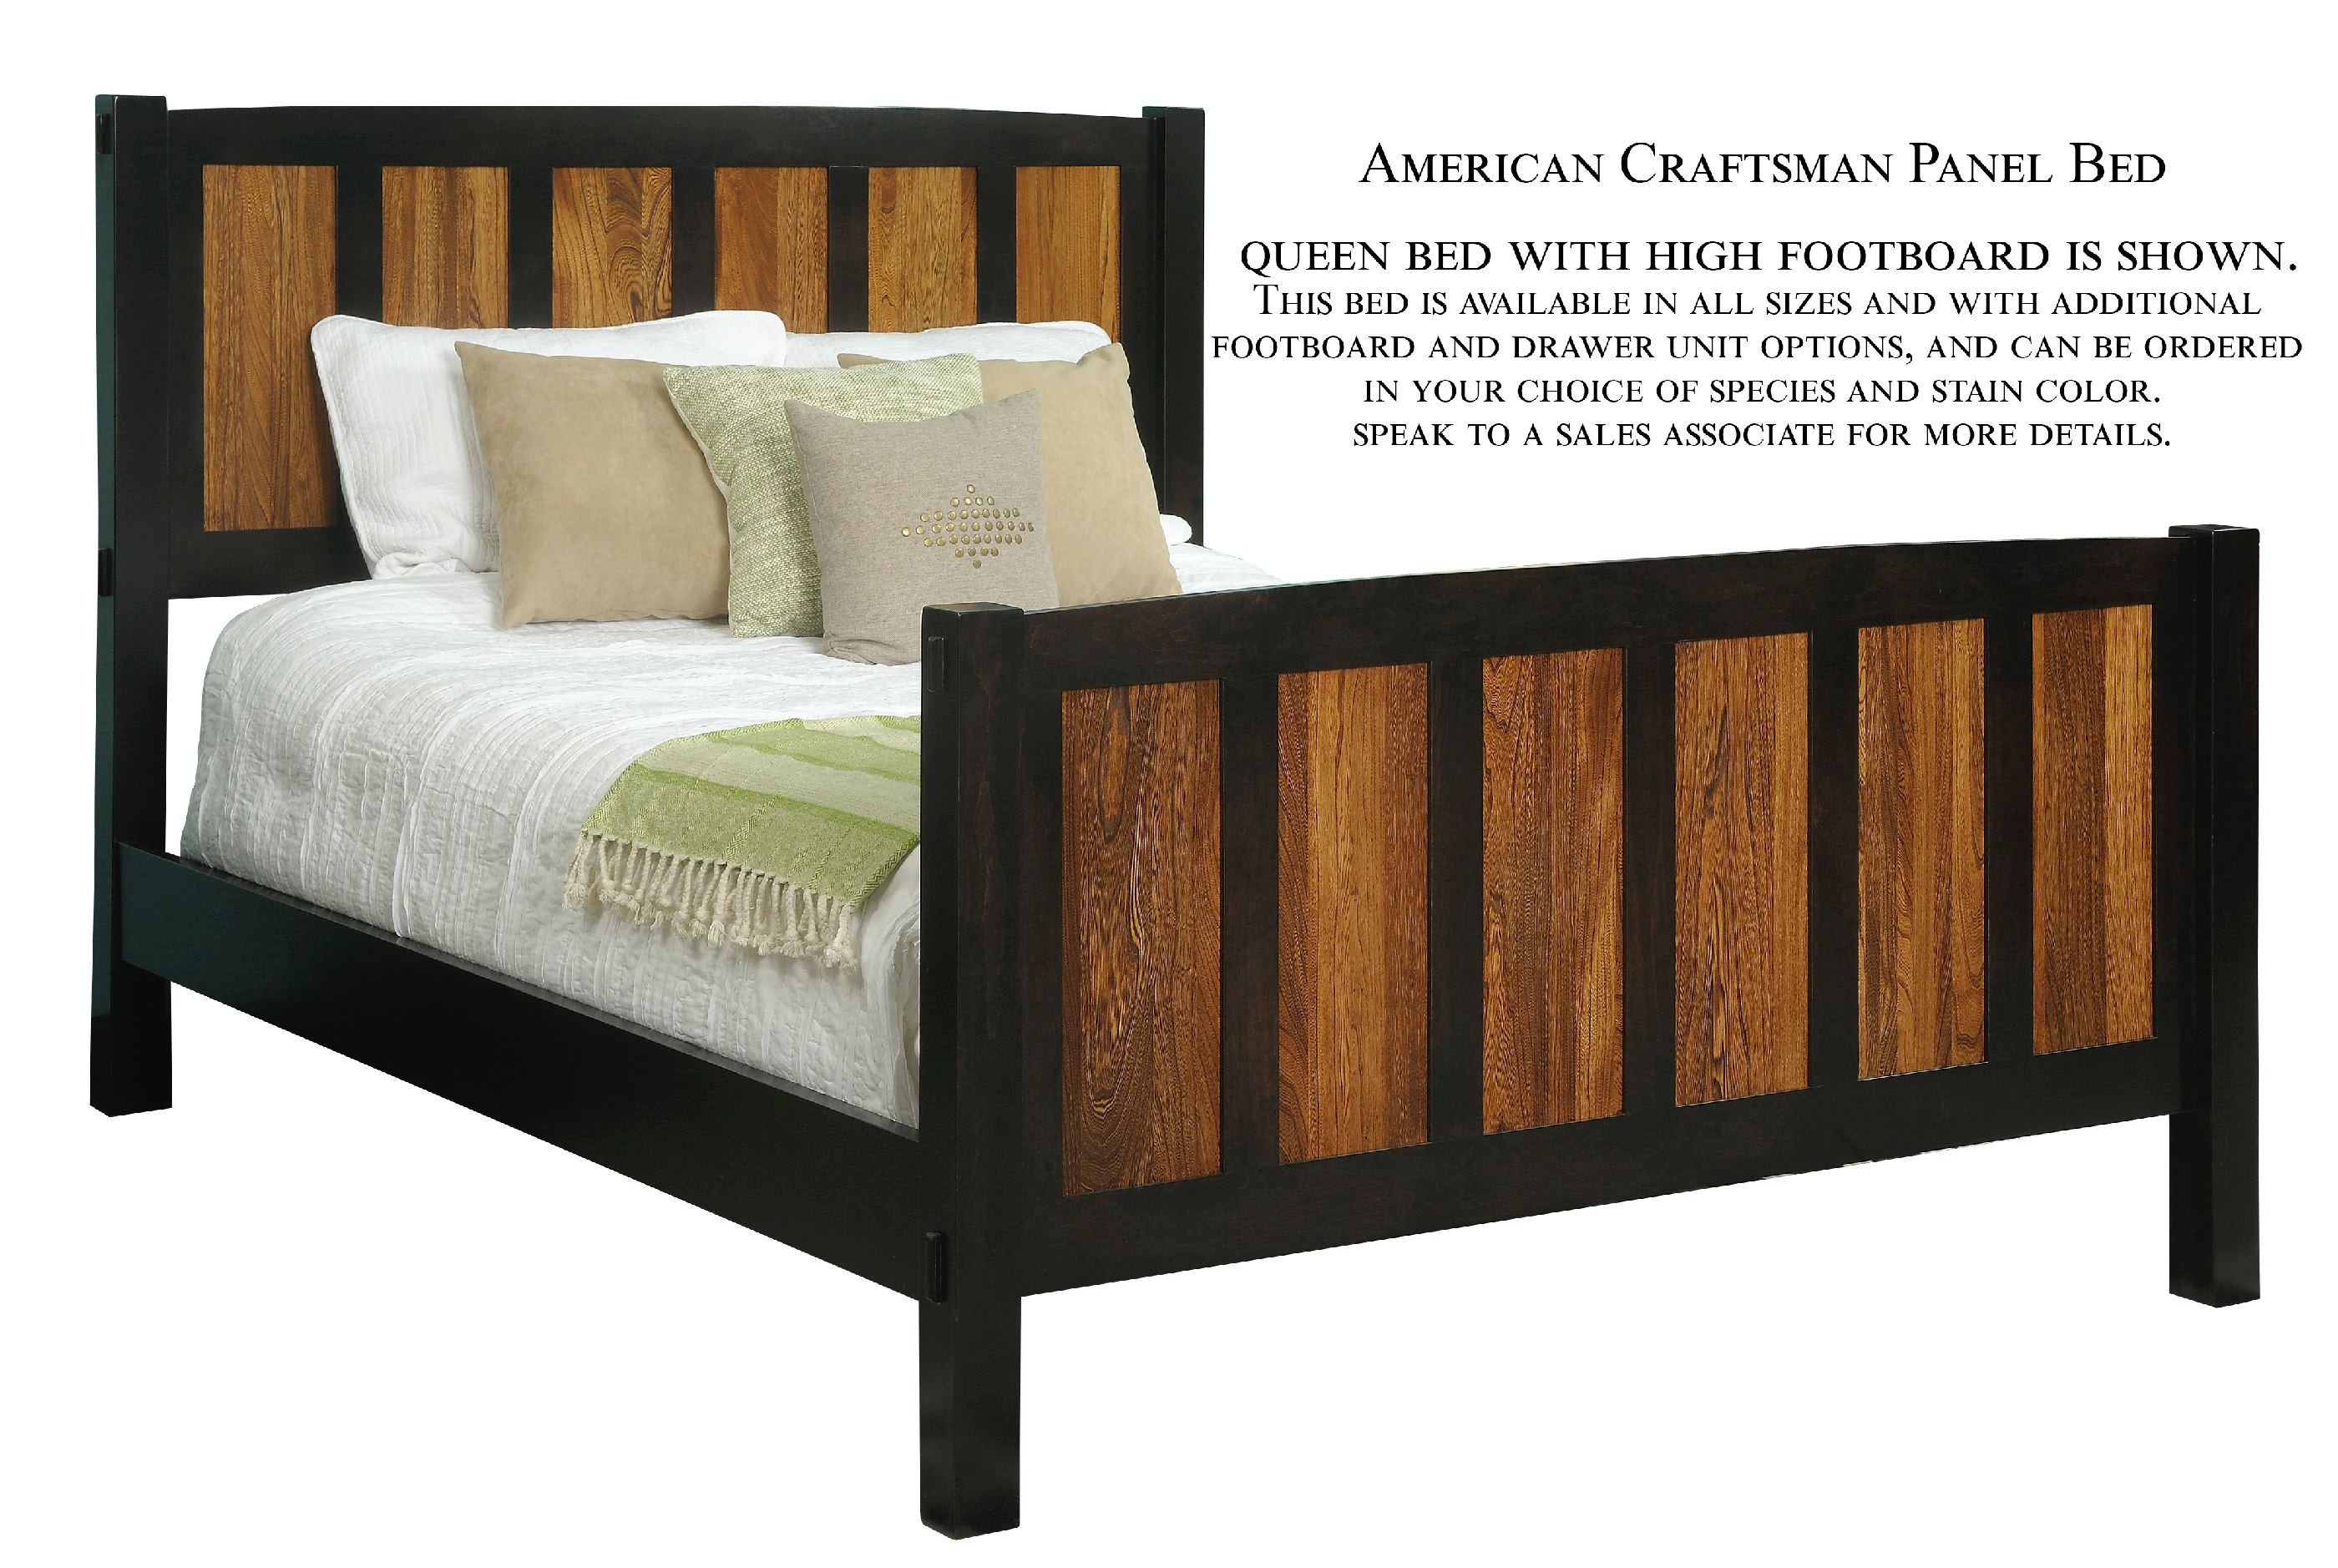 Etonnant Palettes By Winesburg Panel Bed With High Footboard 09412